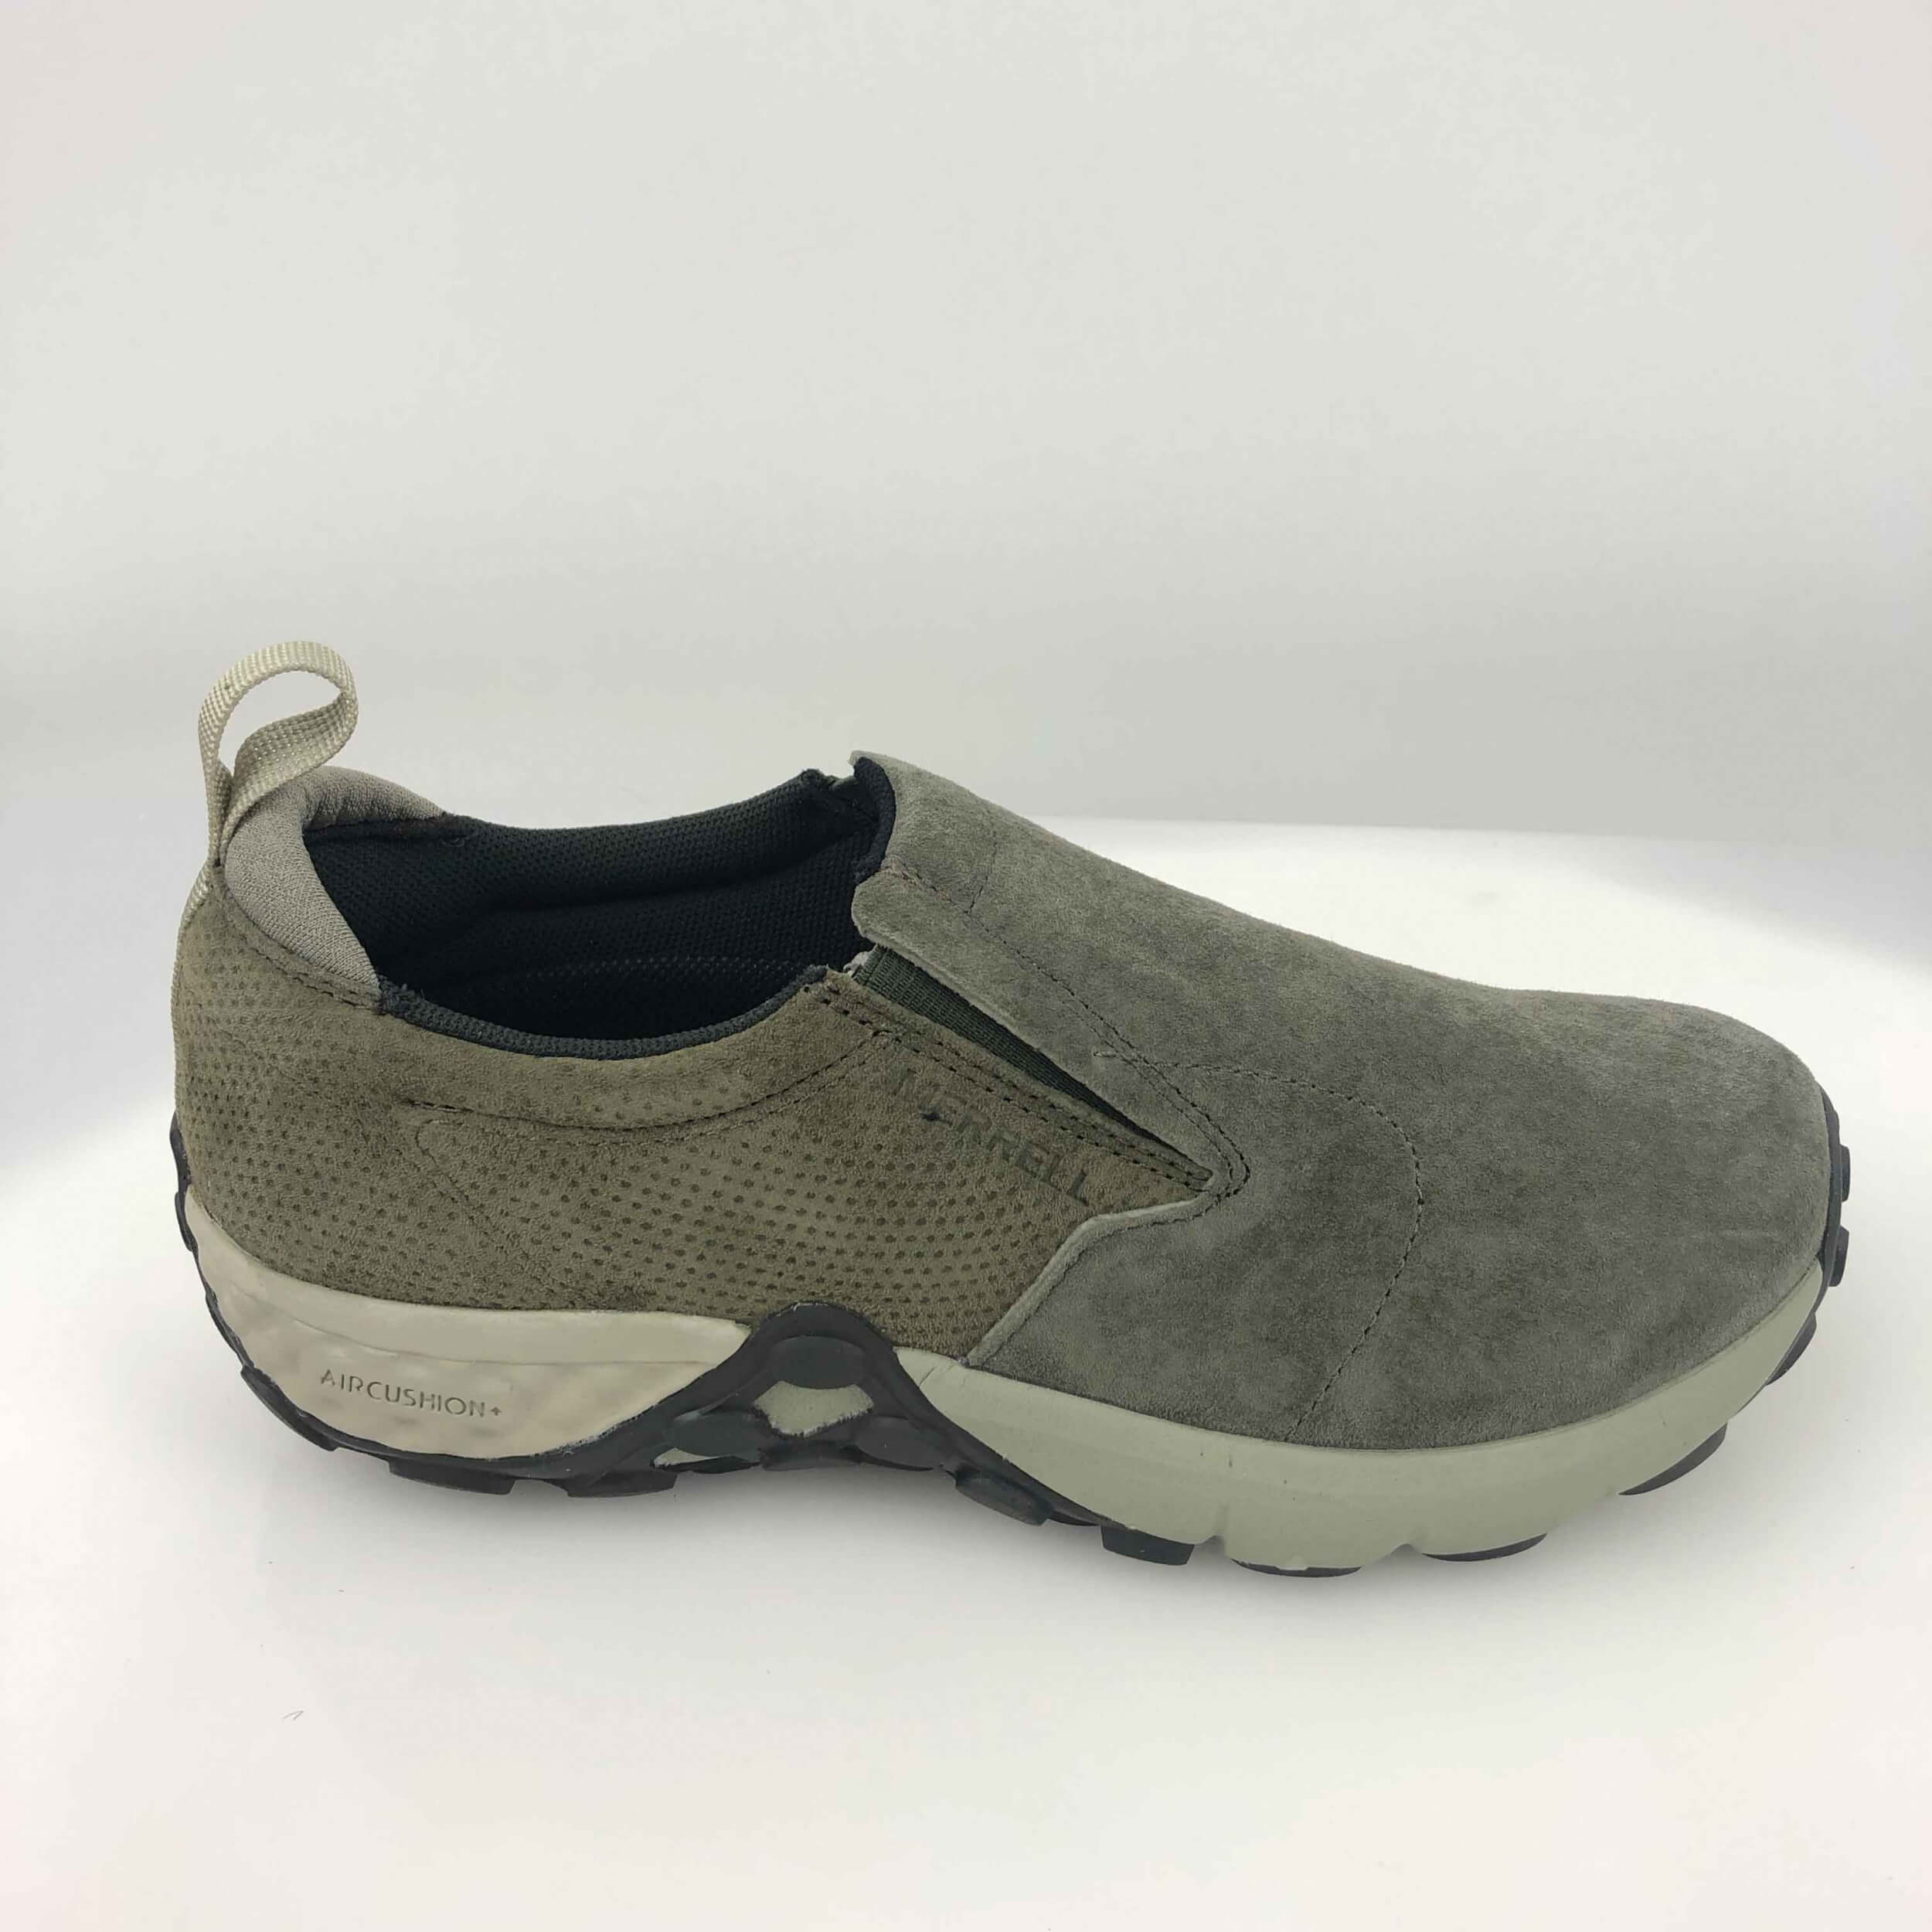 Merrell Damen Sneaker Jungle Moc AC+ olive J45750